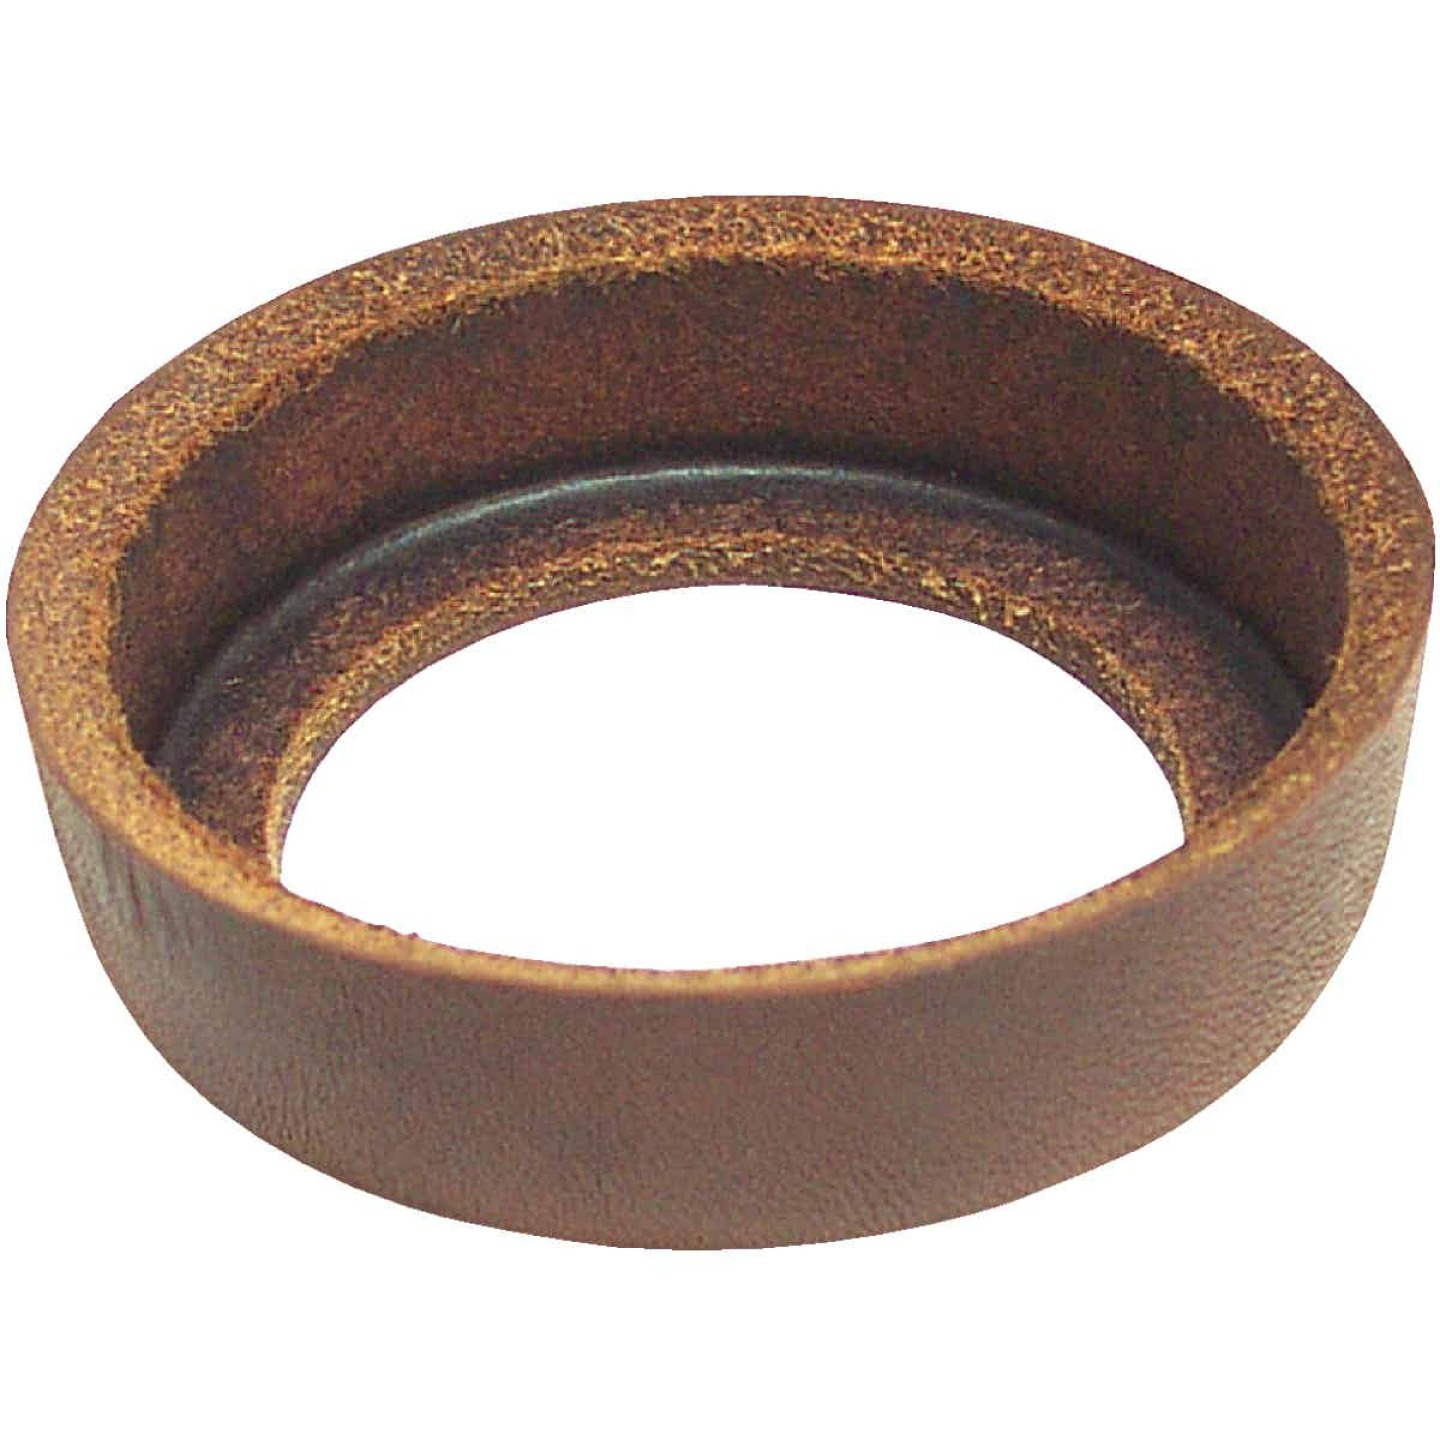 Merrill 3 In. x 2 In. x 13/16 In. Cup Leather Image 1